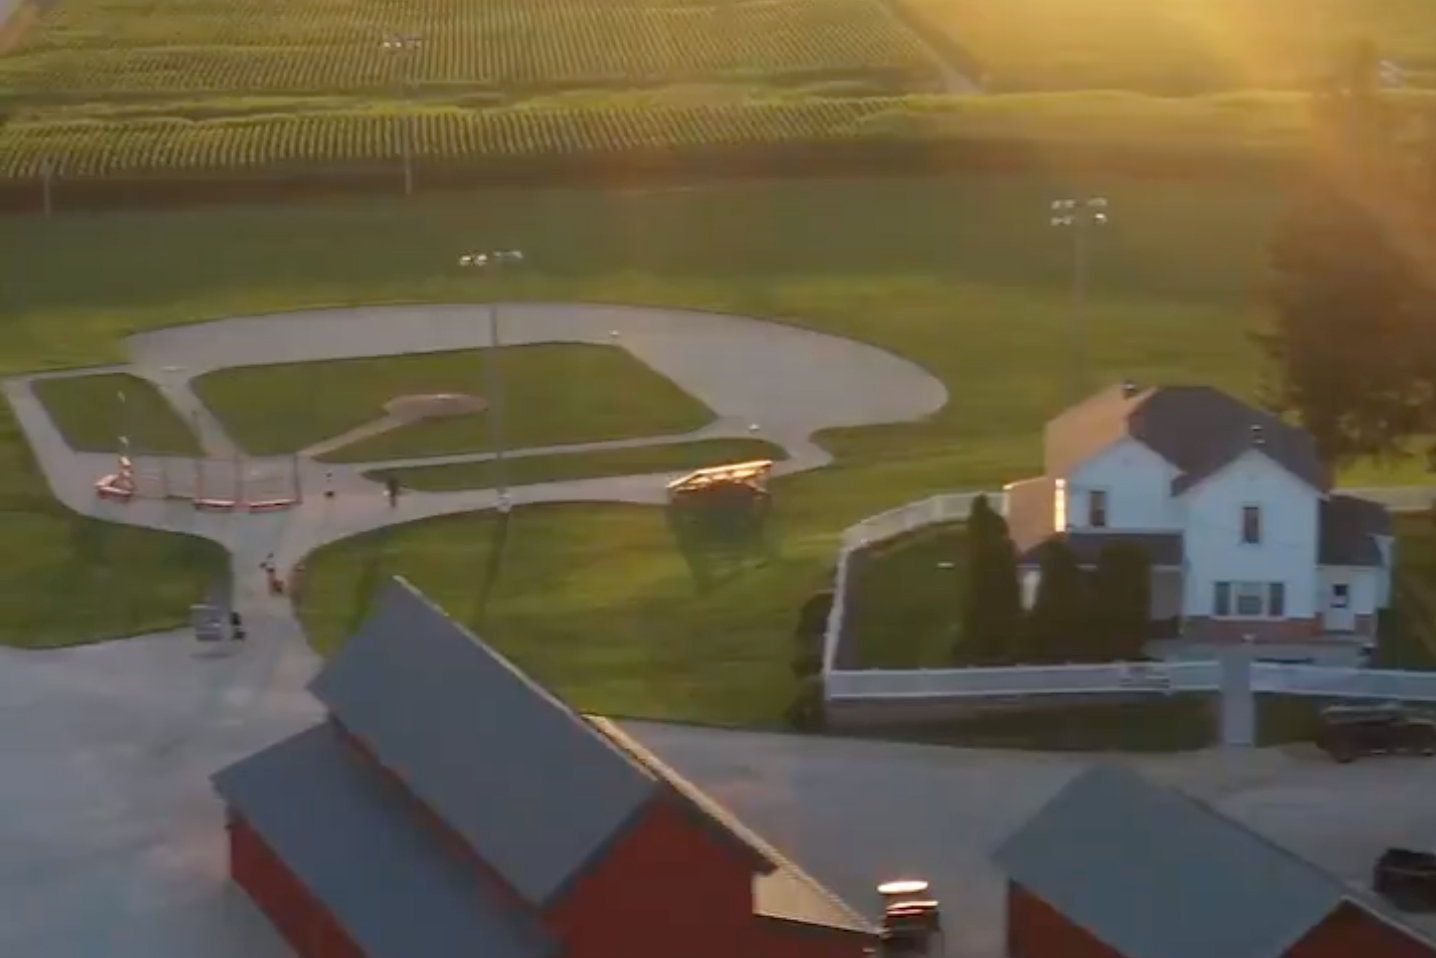 Geico backs MLB's 'Field of Dreams' game and McCormick makes hot deal: Trending